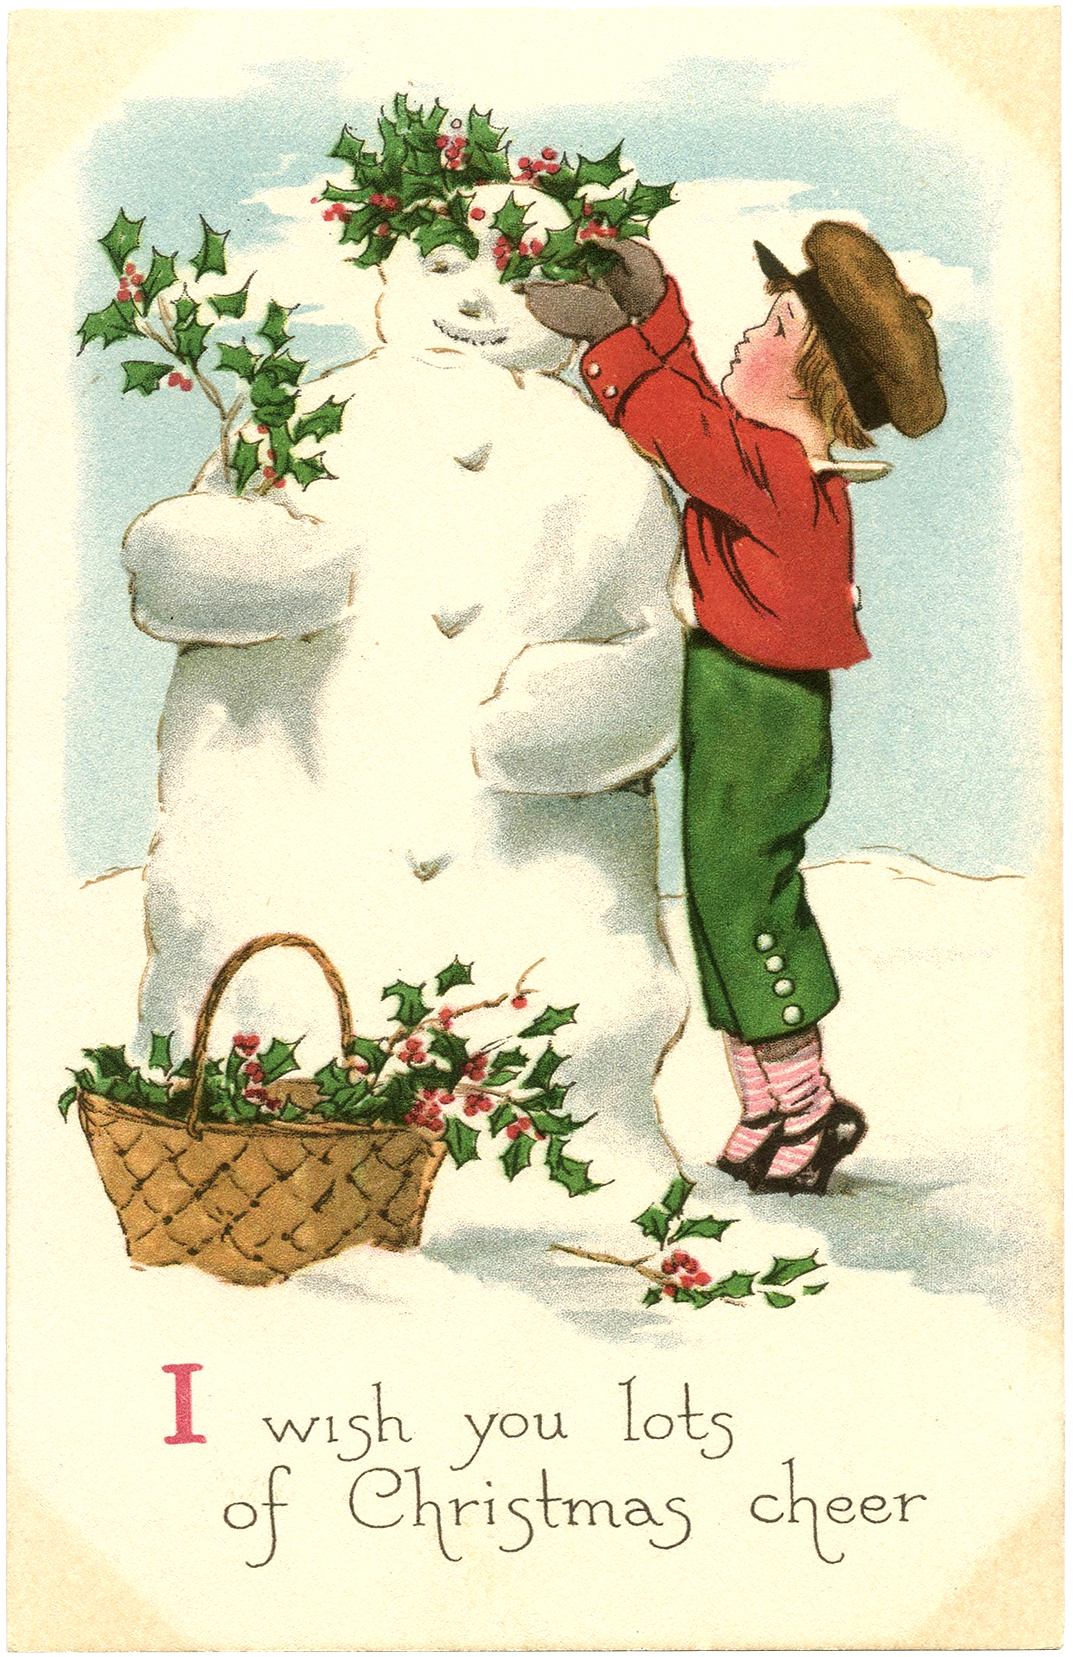 Free vintage snowman image the graphics fairy